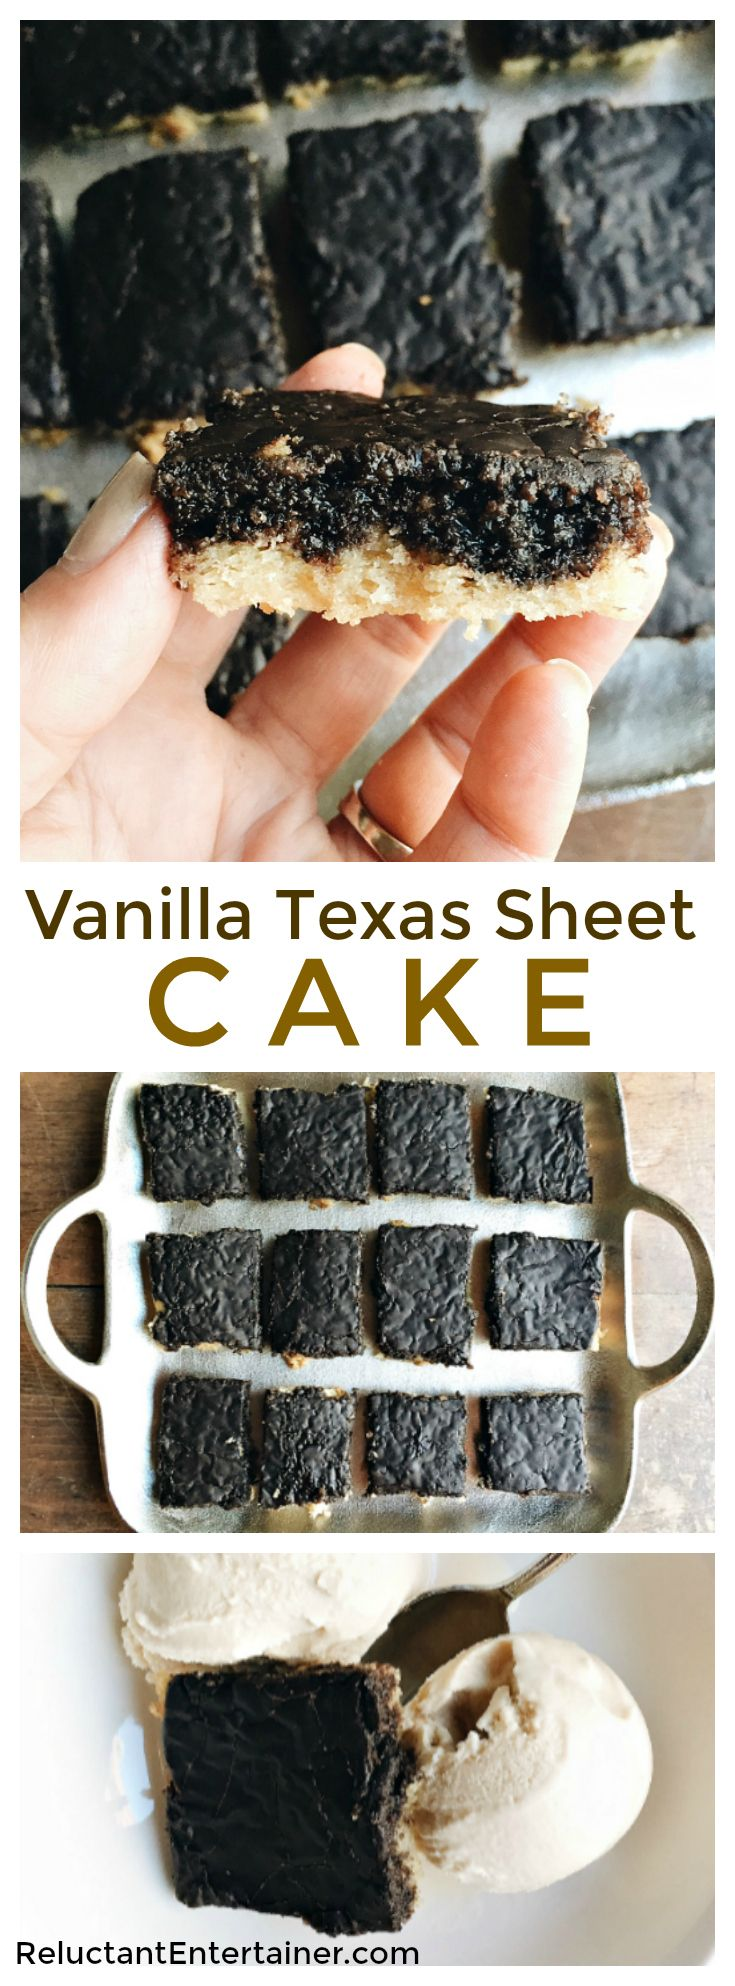 Vanilla Texas Sheet Cake Recipe feeds a crowd, and is delicious served with…